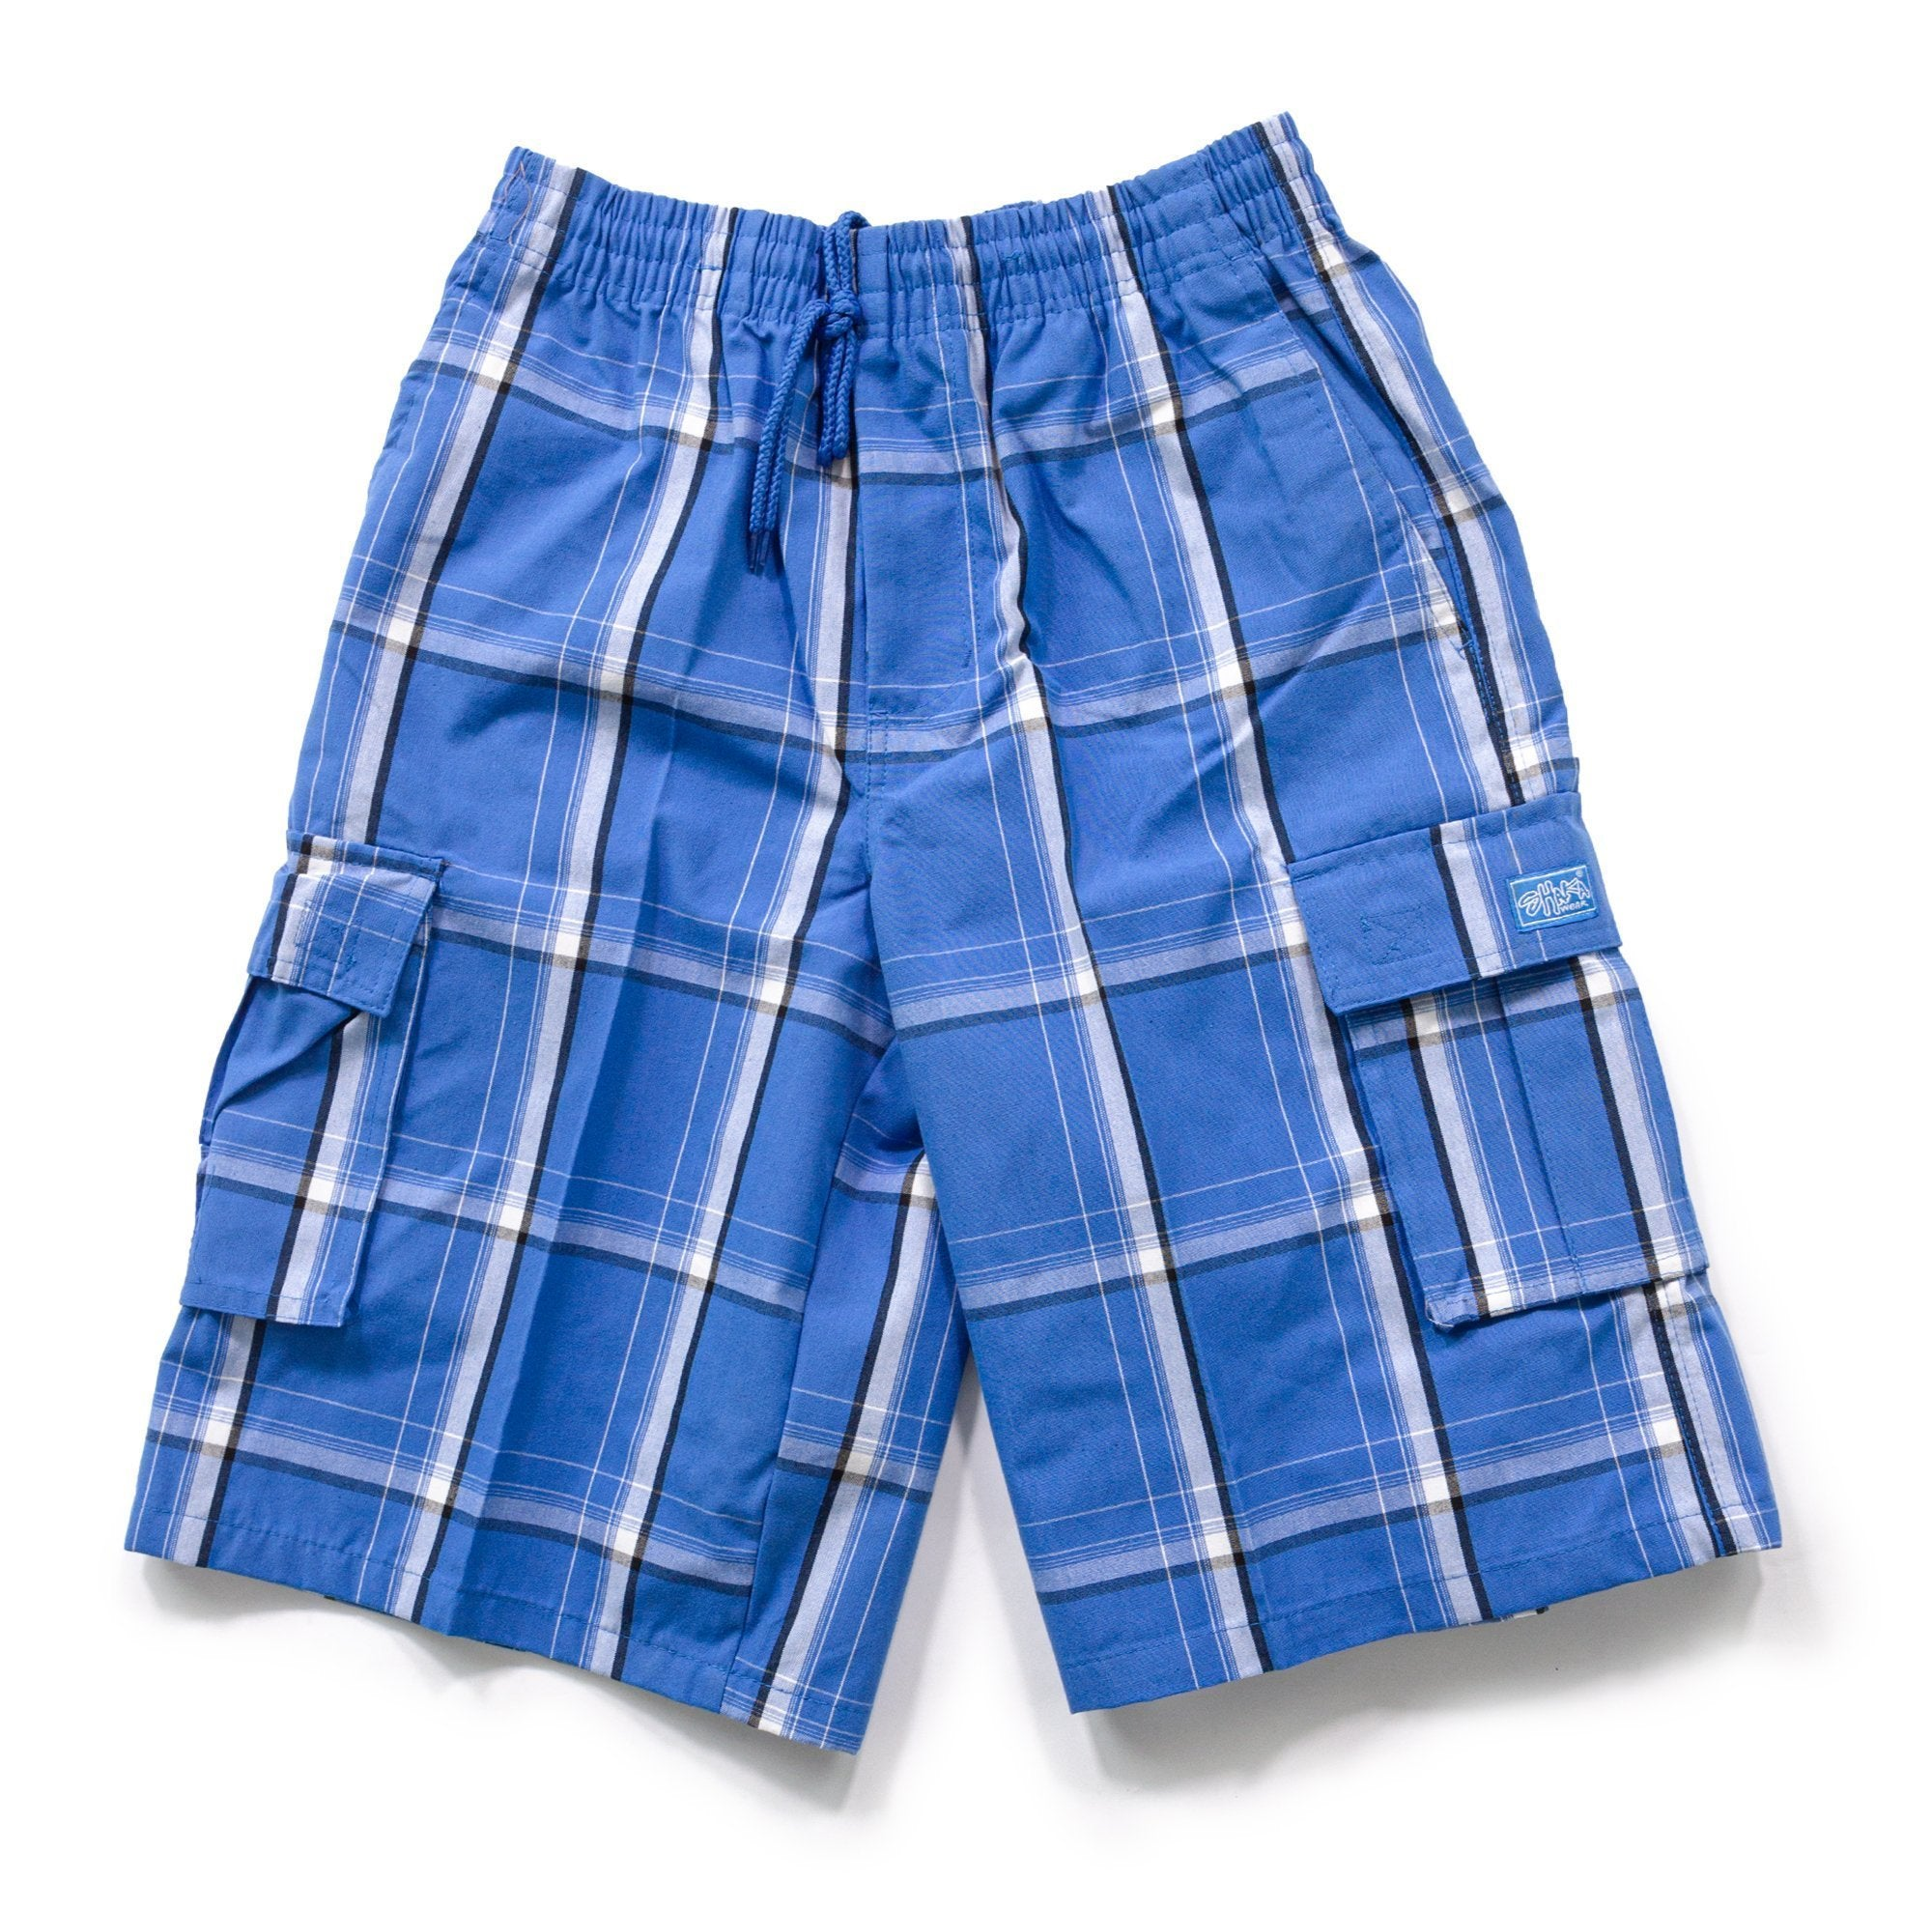 Kids' Plaid Shorts